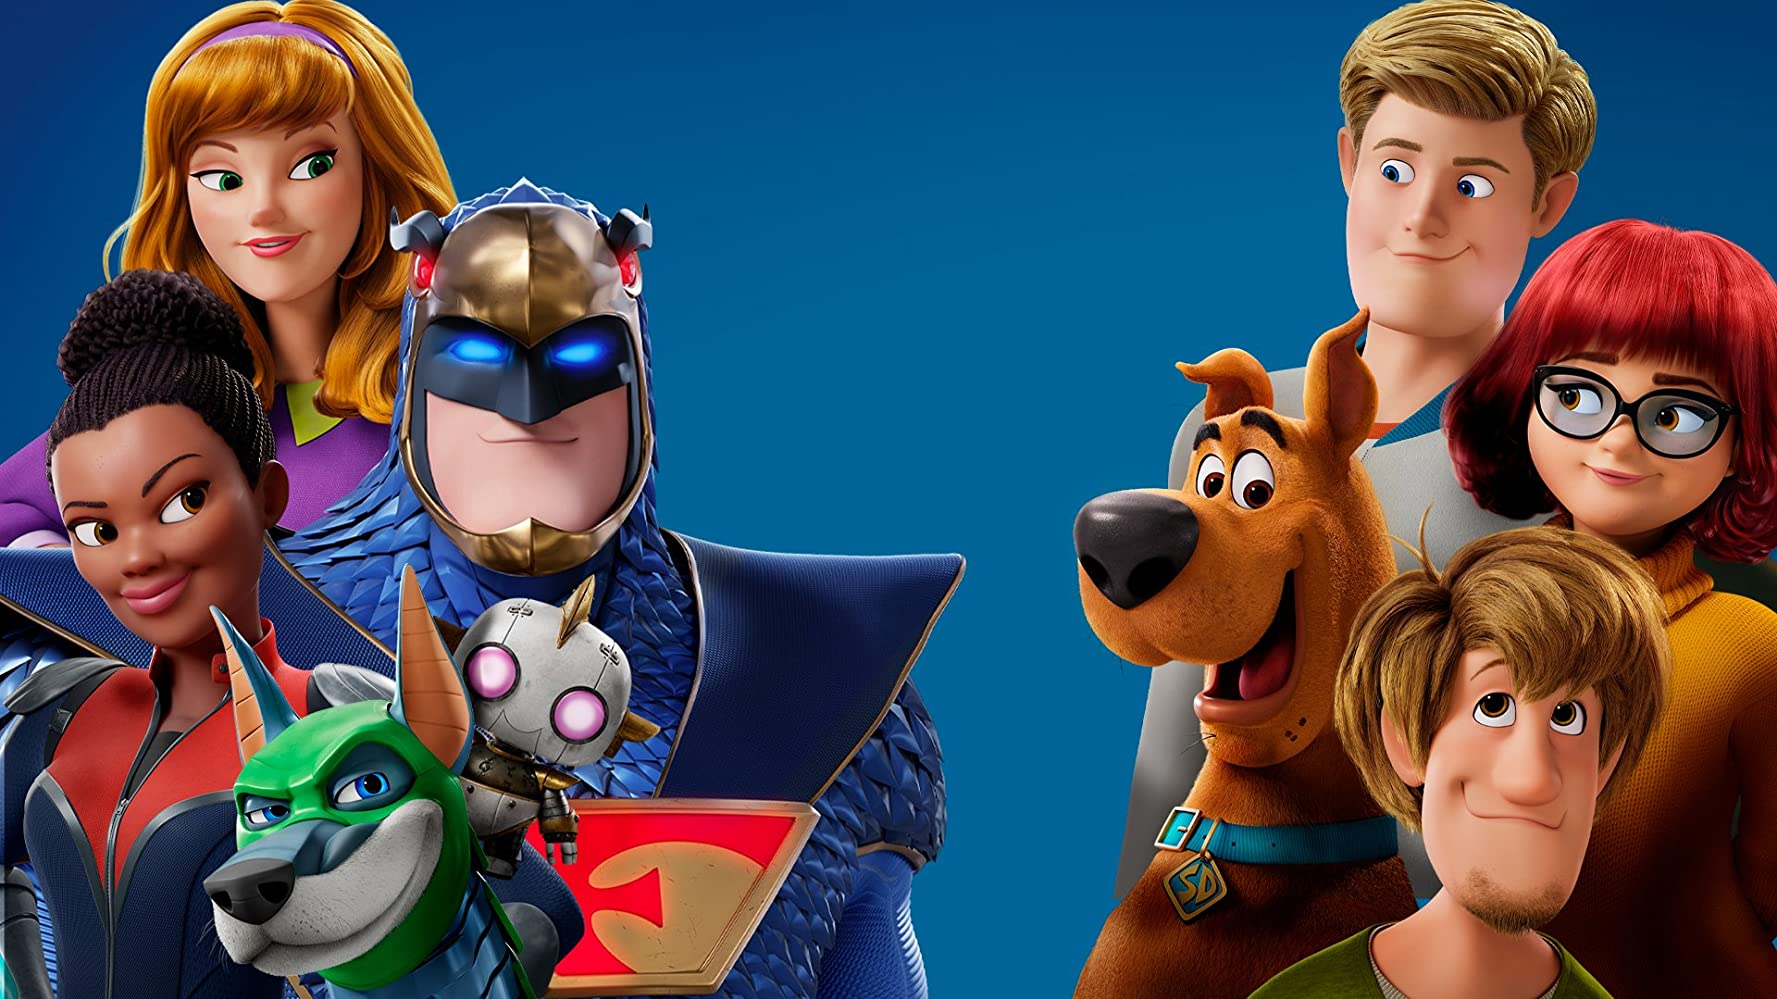 Scoob! (2020) Film Online Subtitrat in Romana in HD 1080p